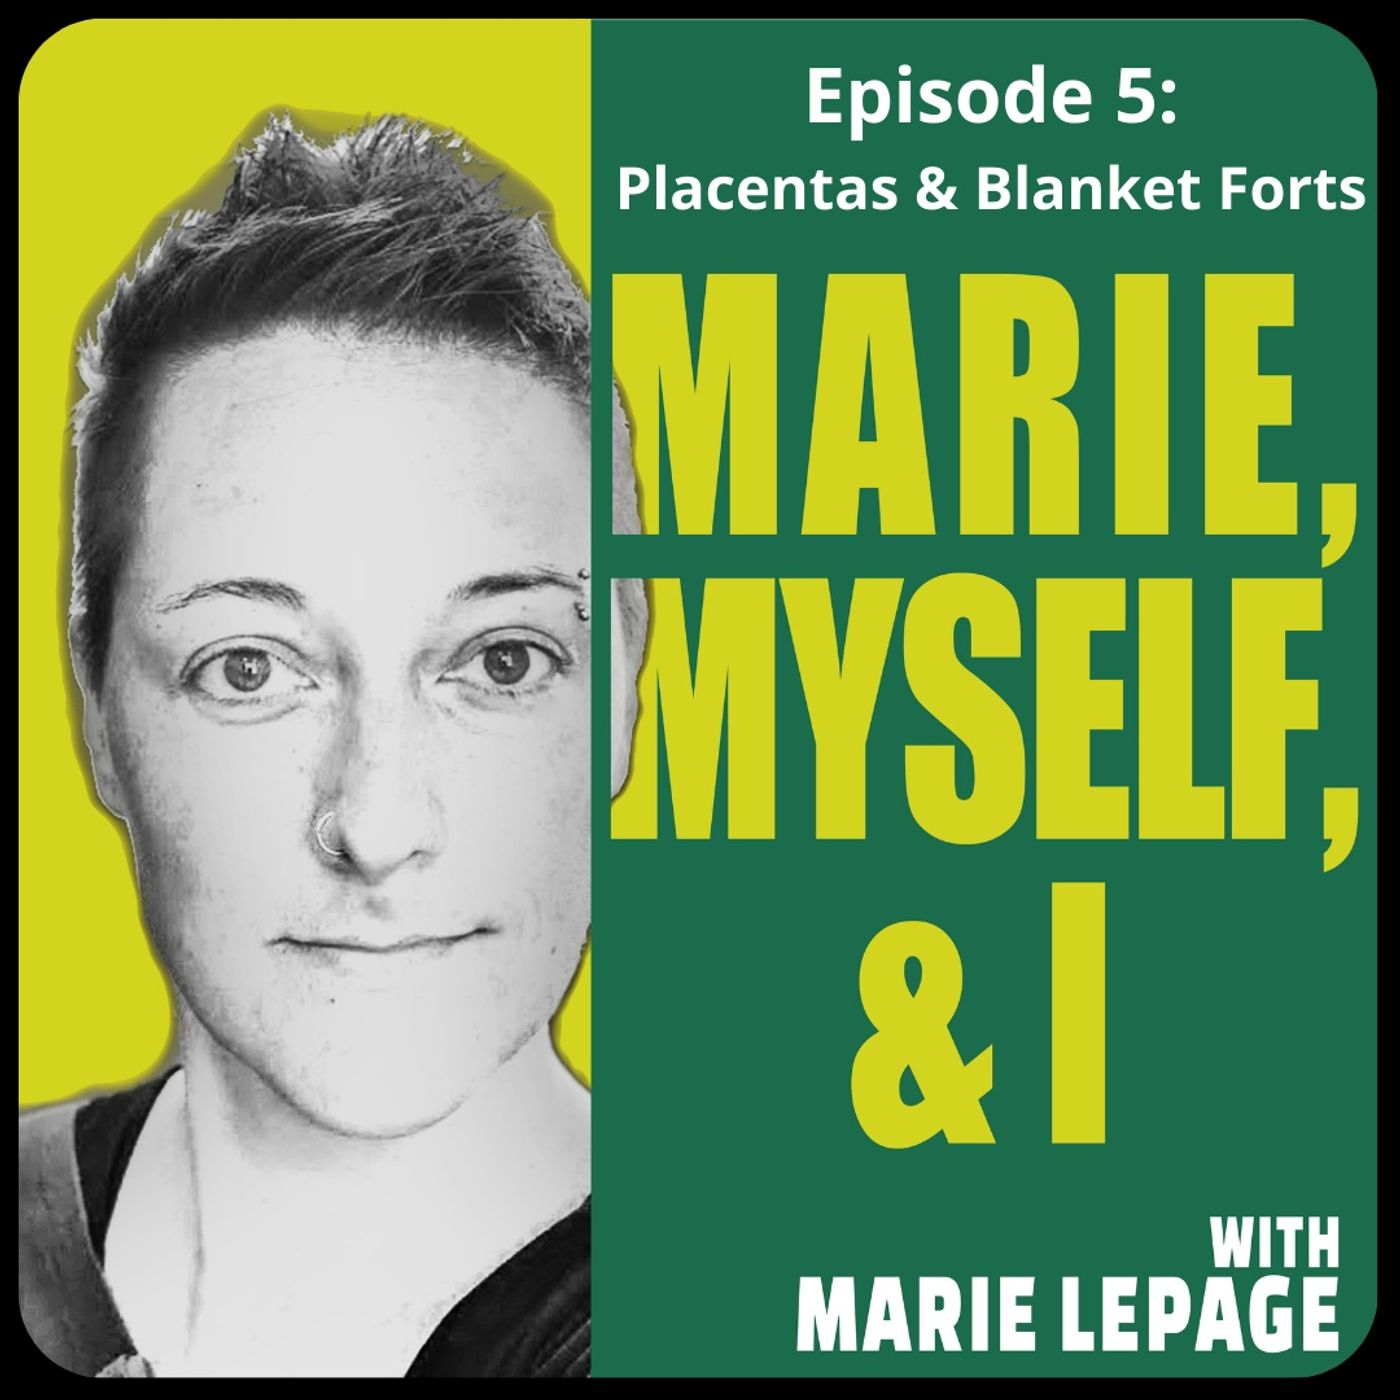 Episode 5: Placentas and Blanket Forts